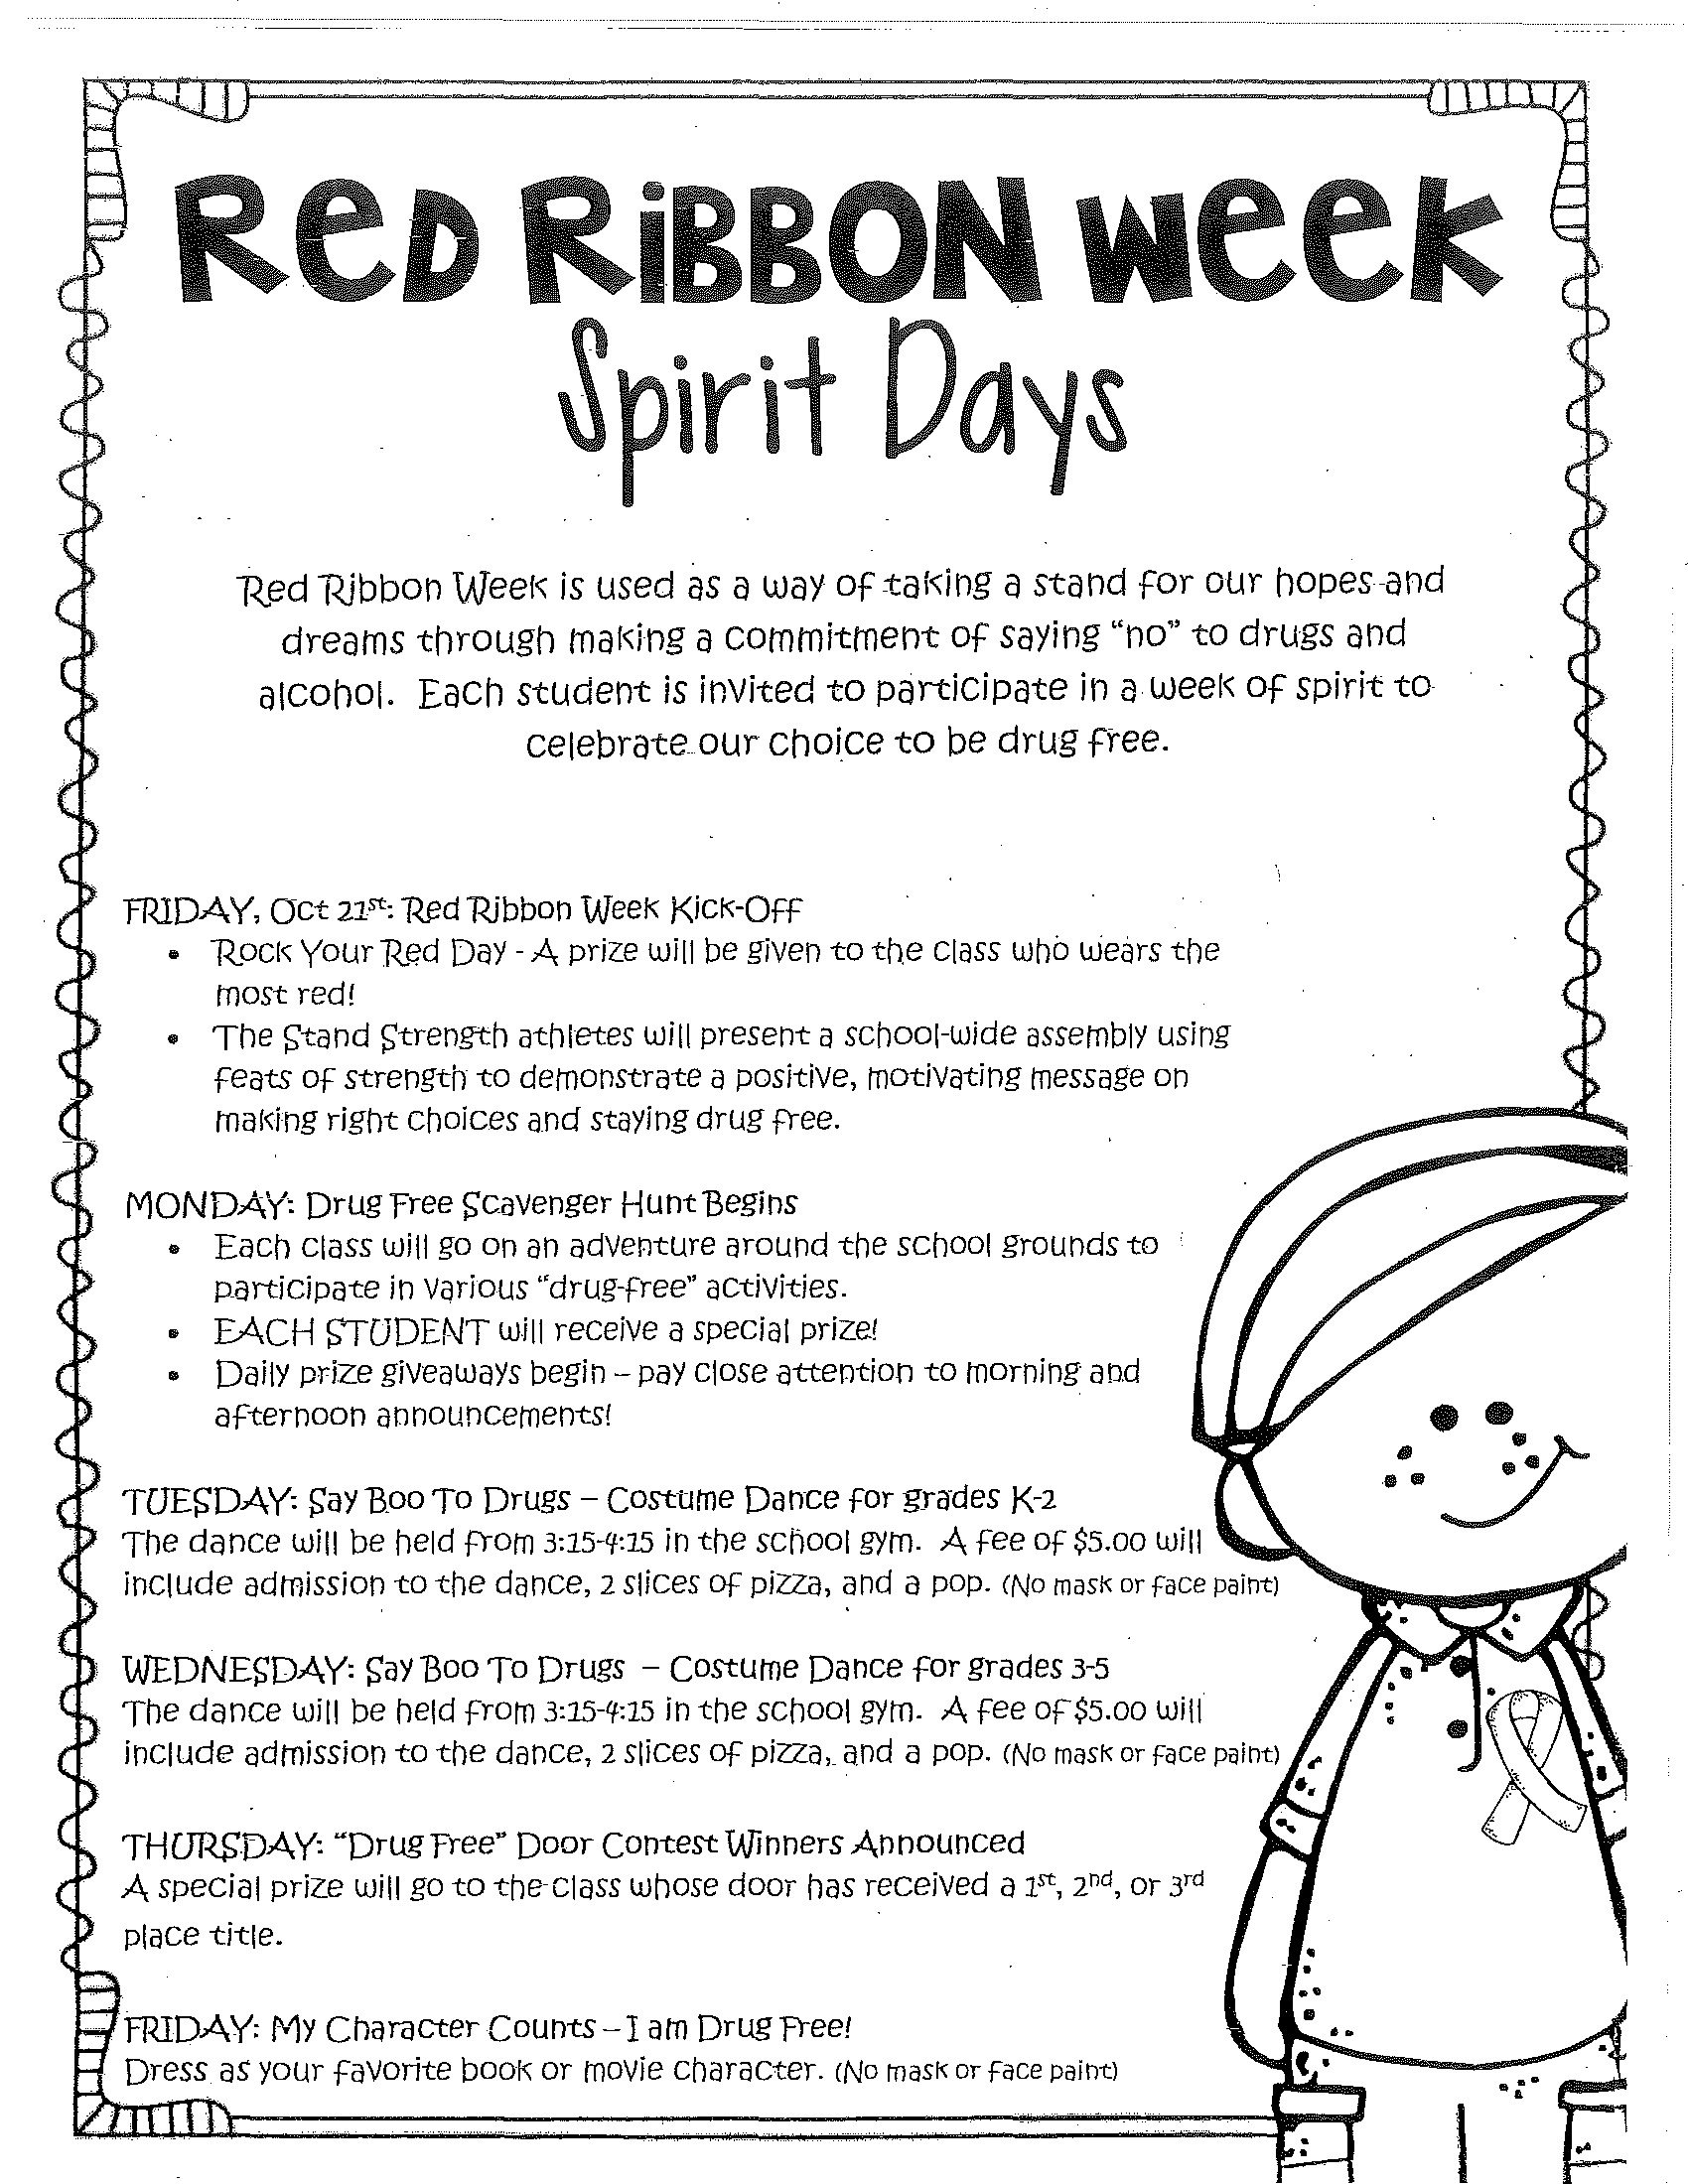 10 Best Red Ribbon Week Ideas For Middle School mves red ribbon week spirit days mt vernon elementary school 1 2020